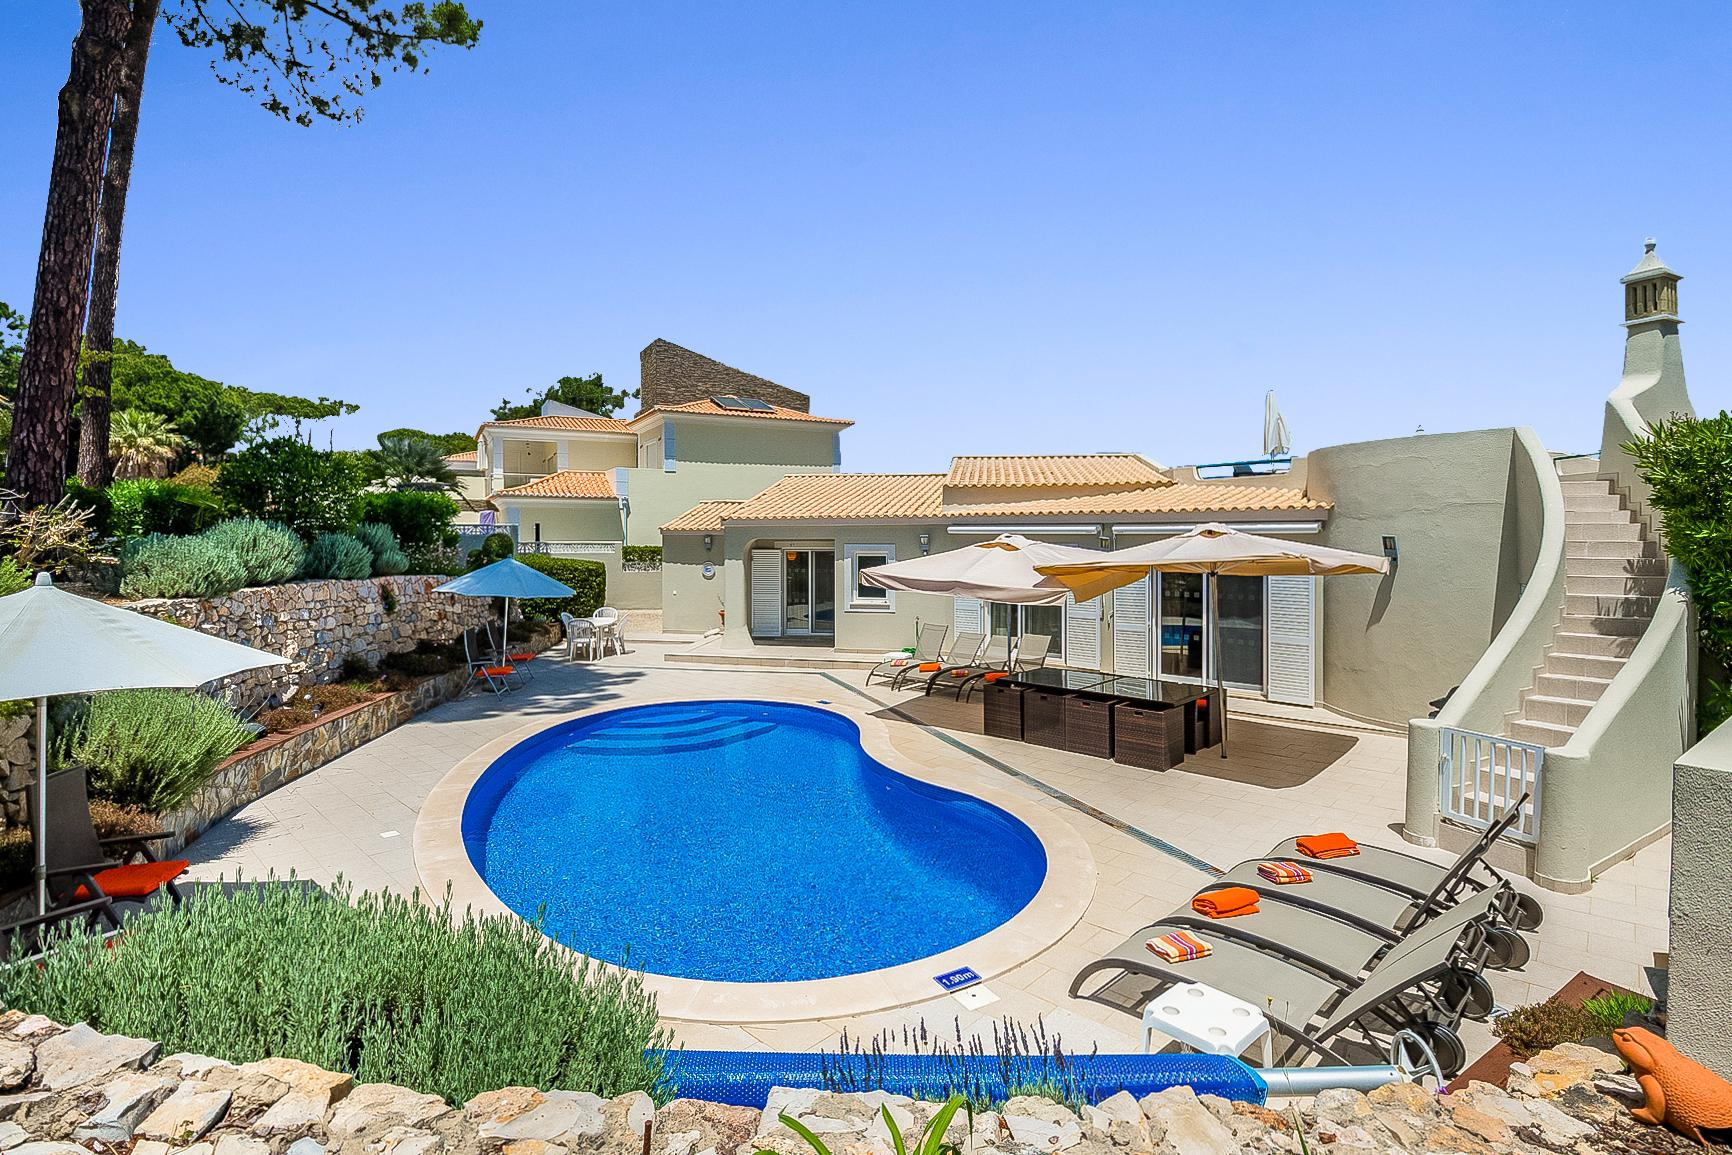 Villa Summer Valley - Valverde, Quinta do Lago, Algarve - DSC1371dp14648368_dp_14734571.jpg